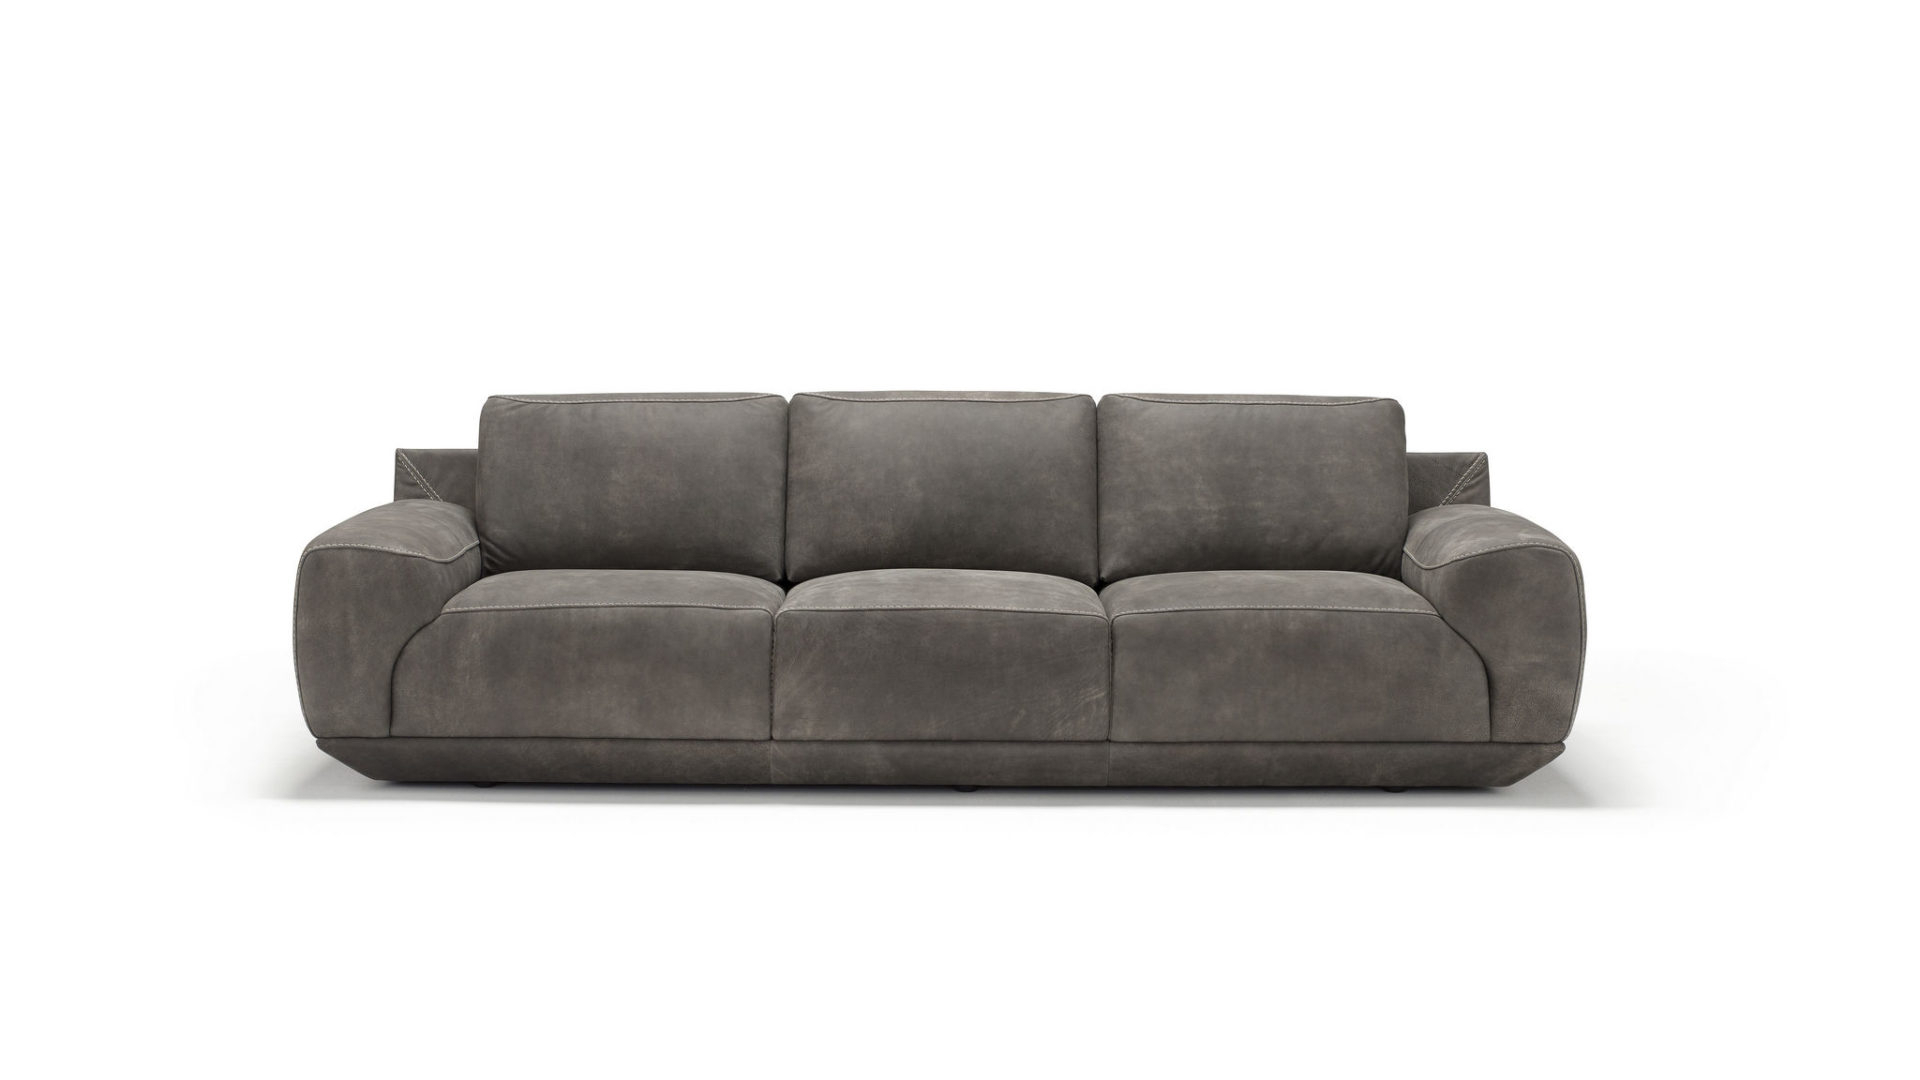 Sofas & Sectionals – Braccisofas Pertaining To Trendy Glamour Ii 3 Piece Sectionals (View 18 of 20)